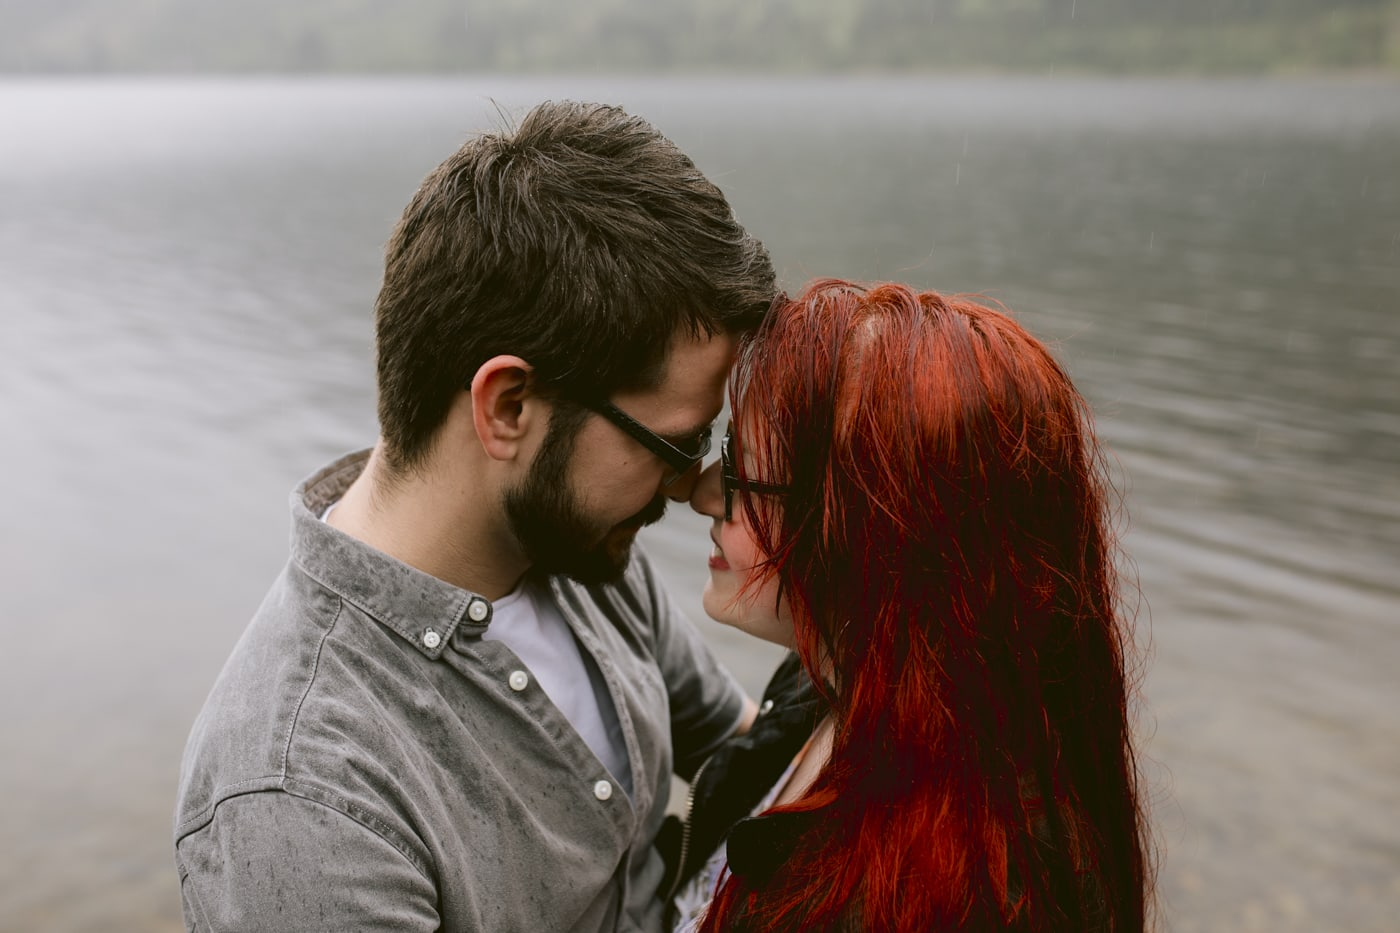 Couple Gazing into Each Others Eyes by the Lakeside Portrait Session